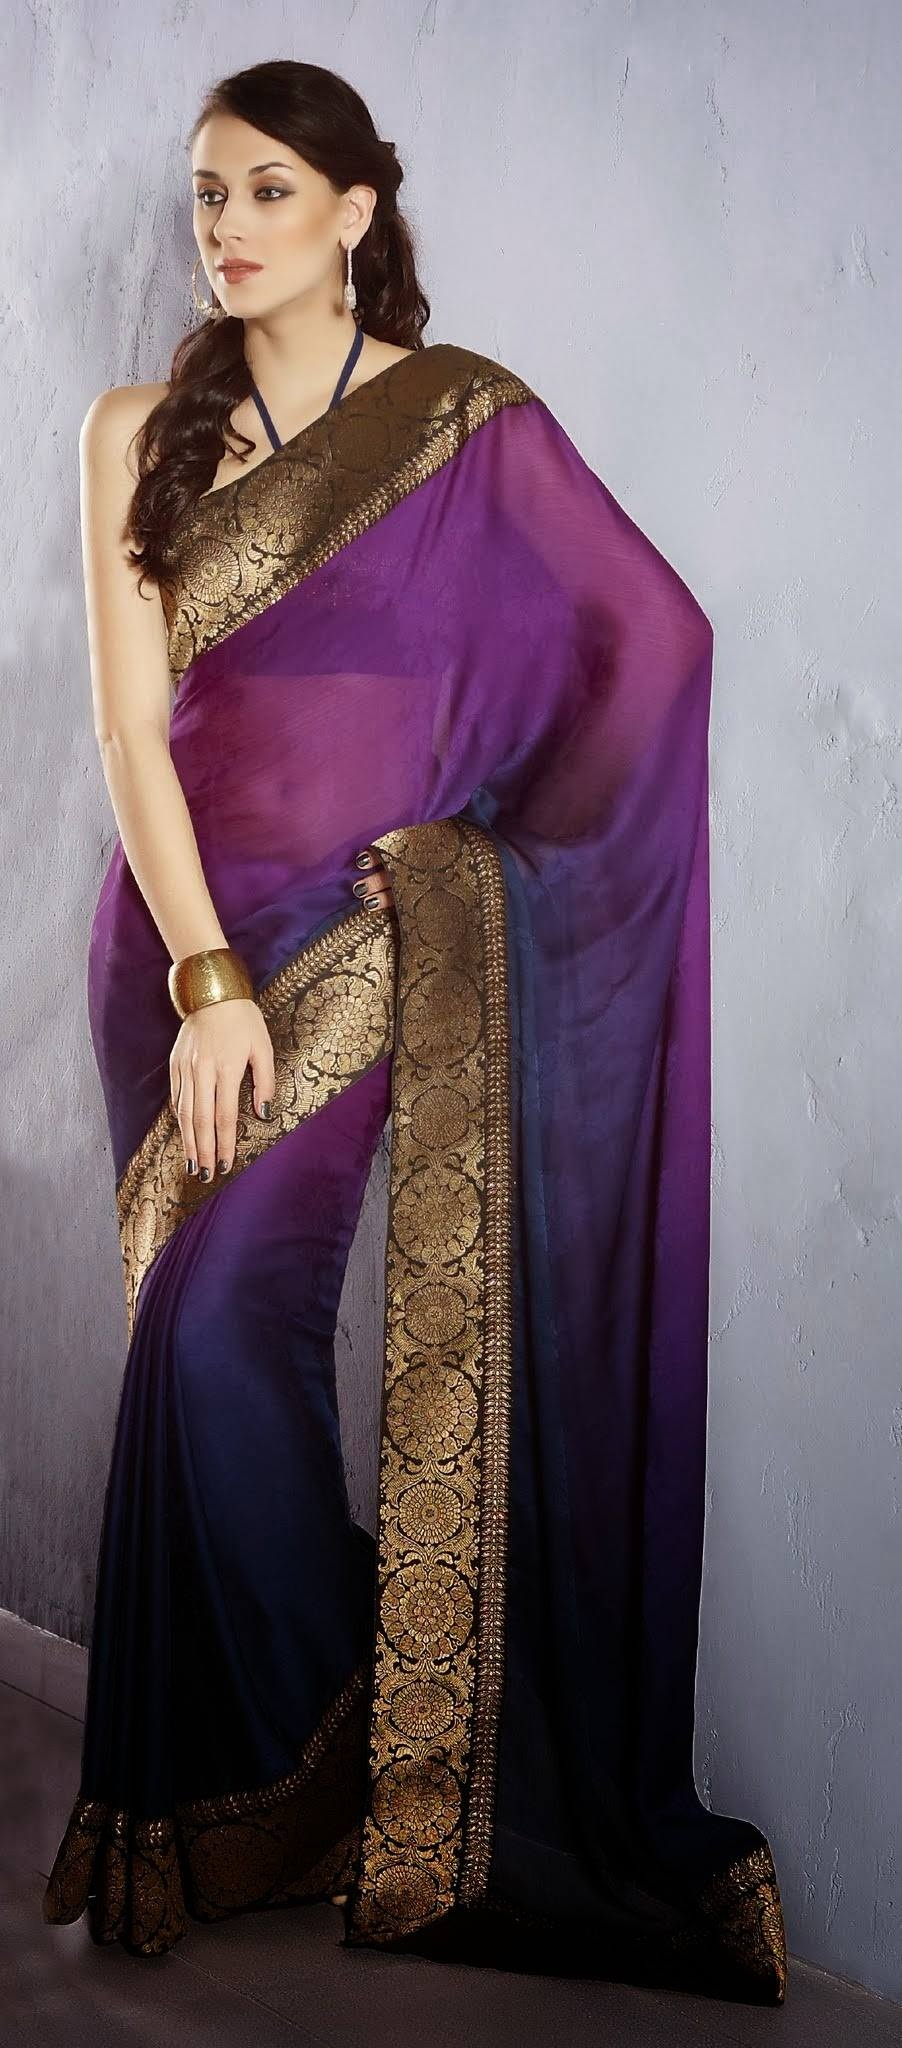 Classic Saree For Young Girls   StyleCry: Bridal Dresses, Women Wear ...